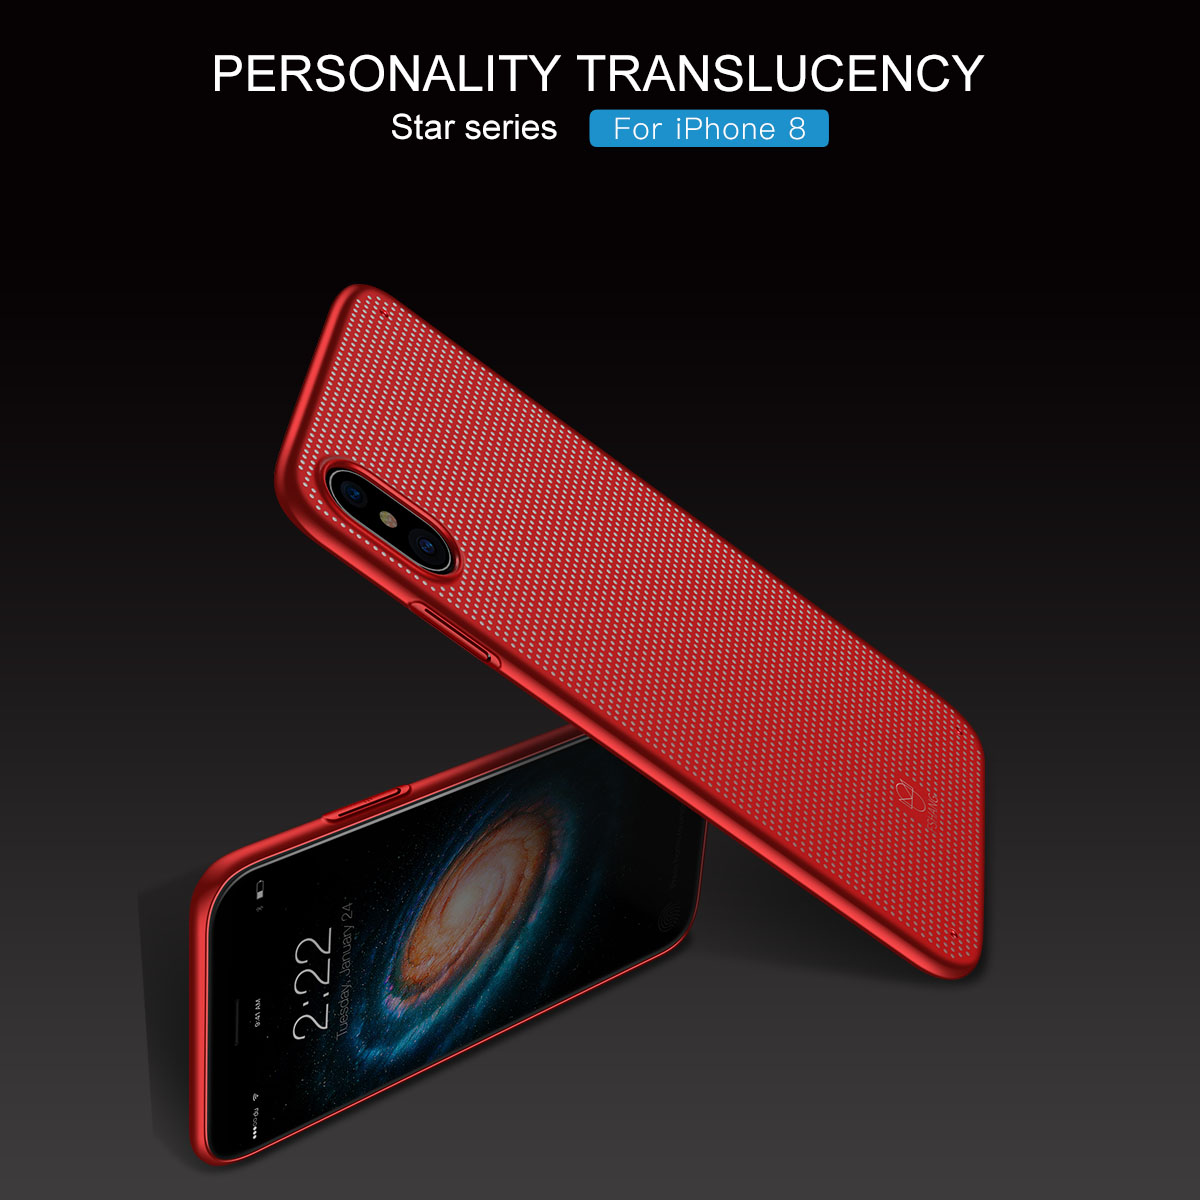 Fan Shang iPhone Cover 8 Apple Accessories